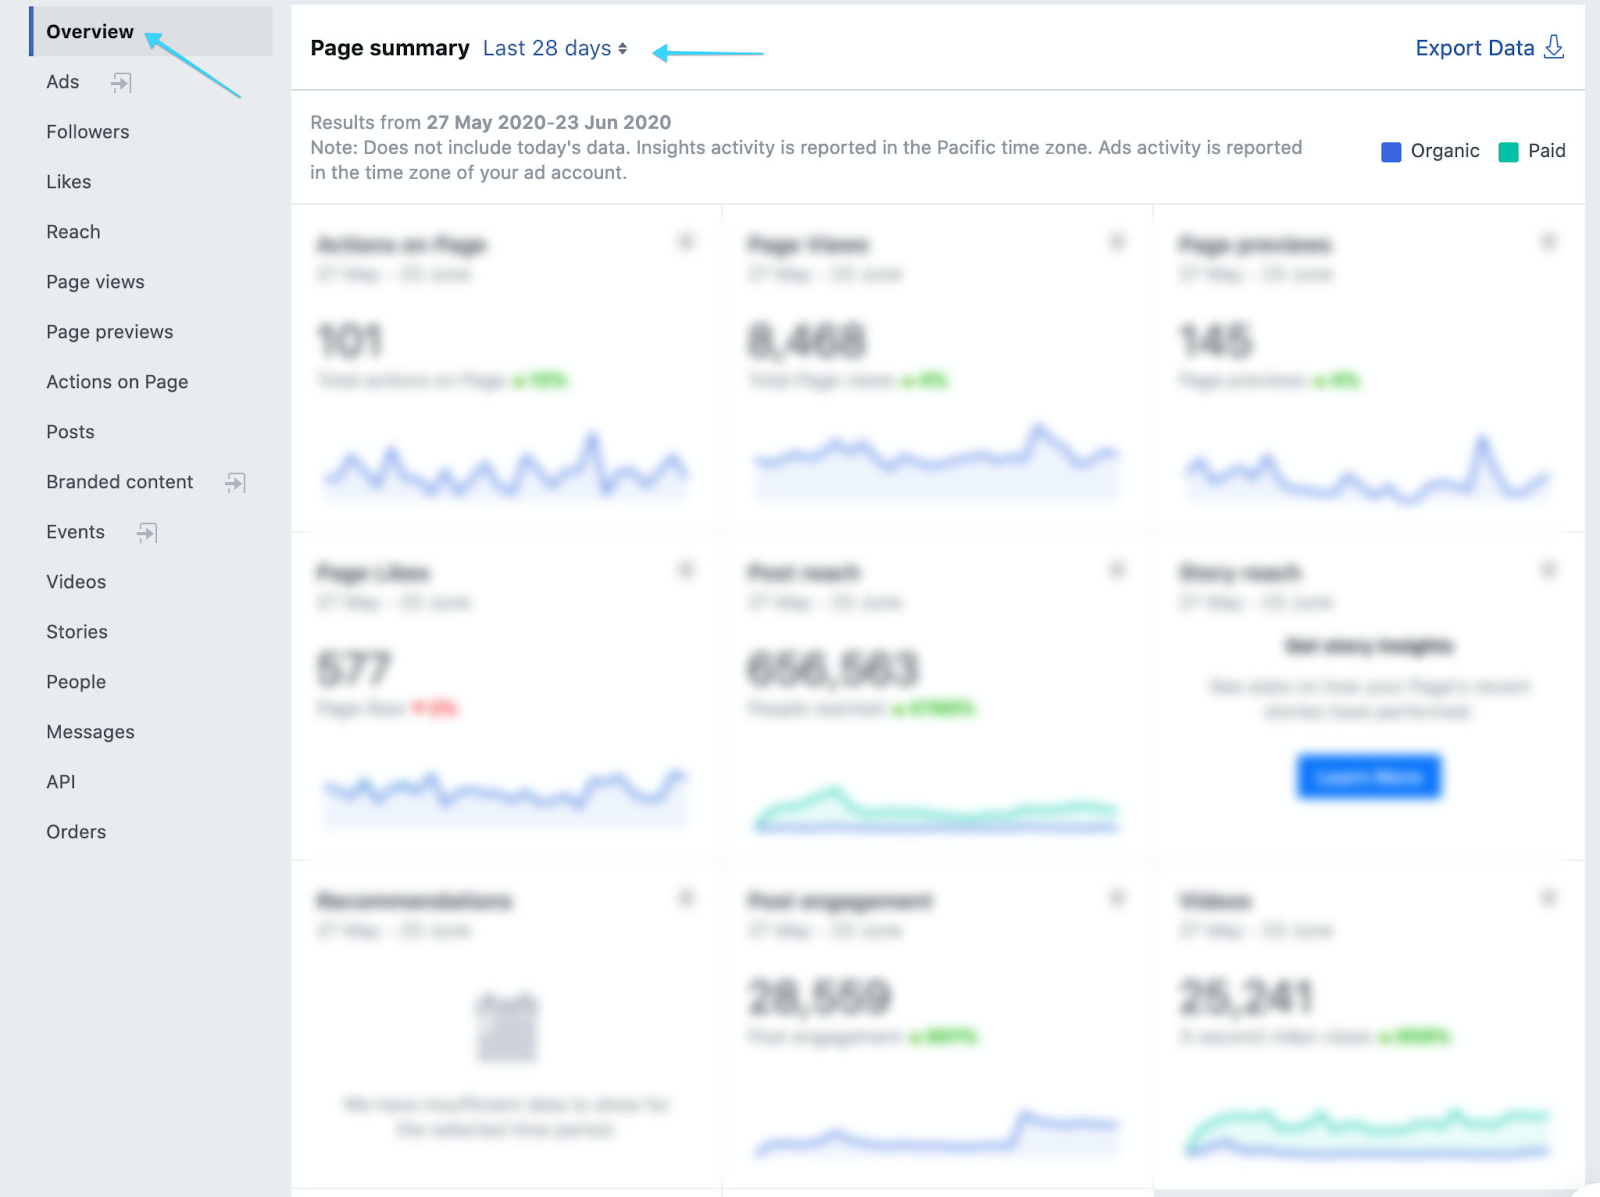 Facebook overview by last 28 days